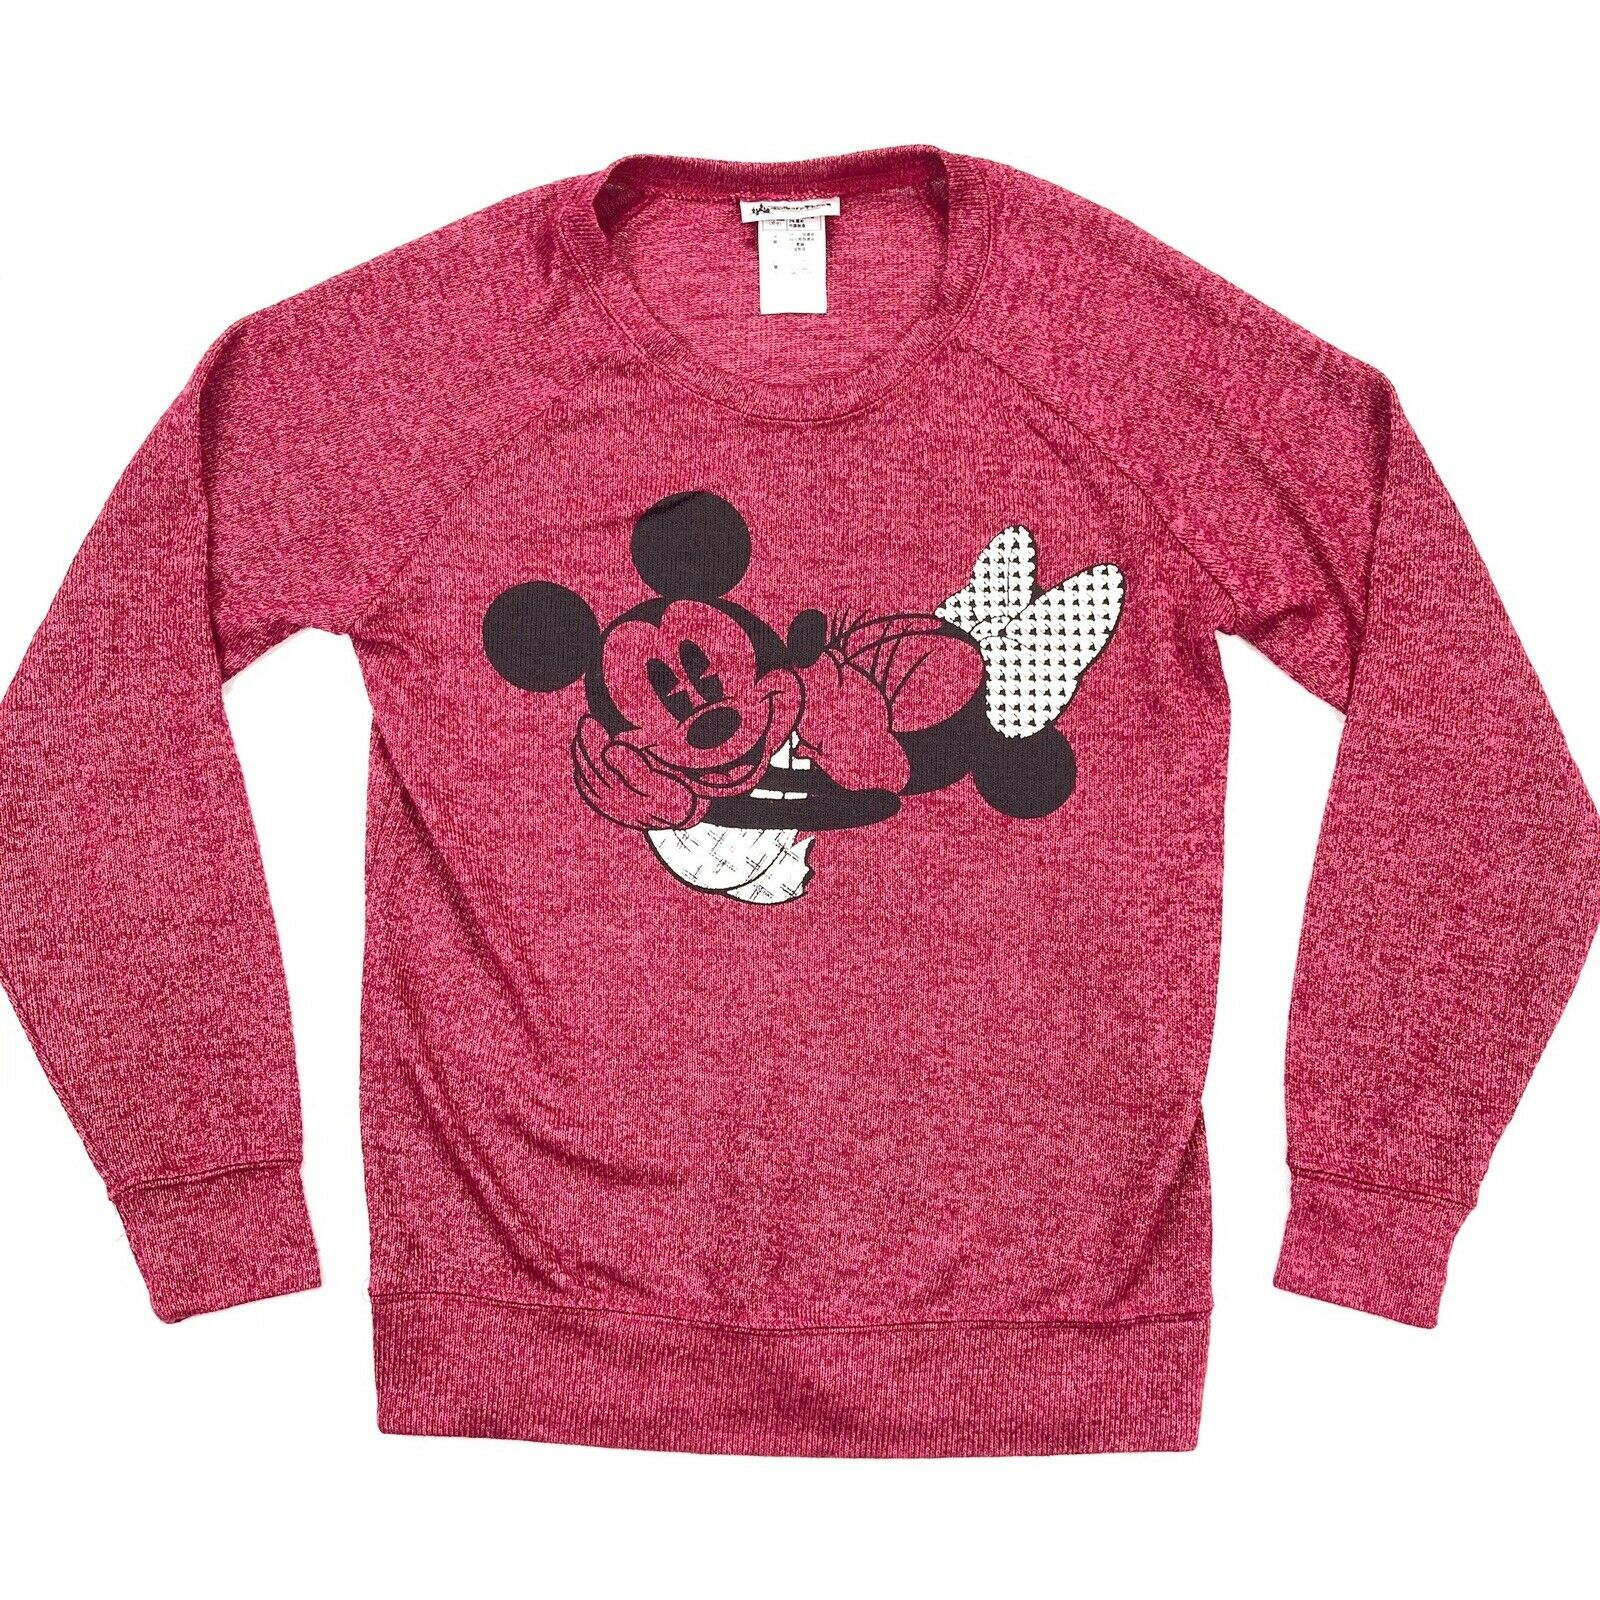 Product Image 1 - NEW Disney Parks Women's Mickey